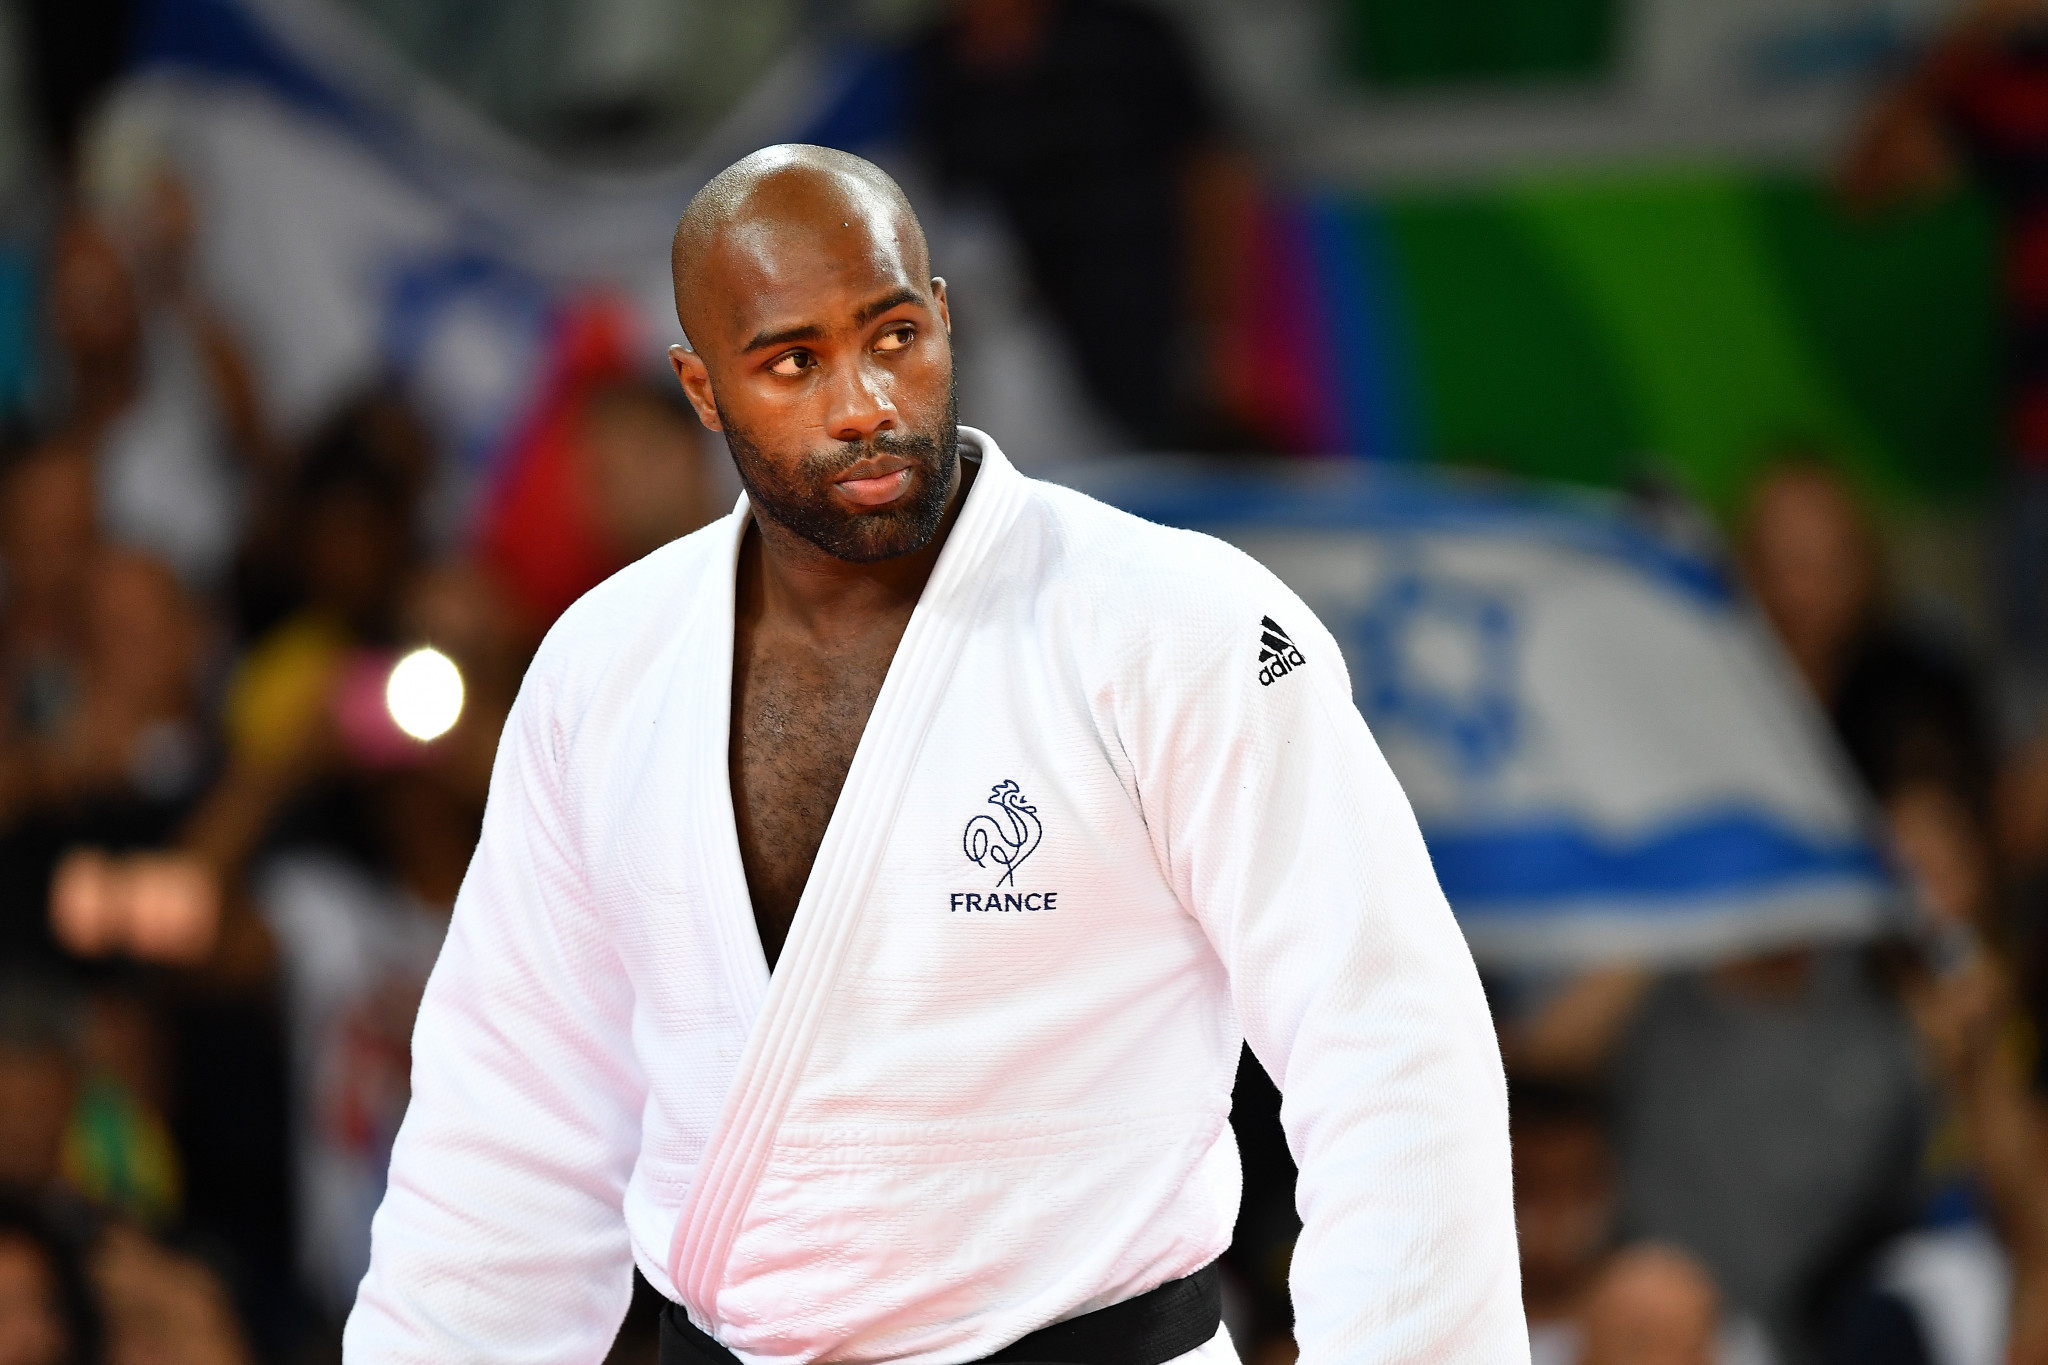 Riner to compete at IJF Paris Grand Slam for first time since 2013 as he chases history